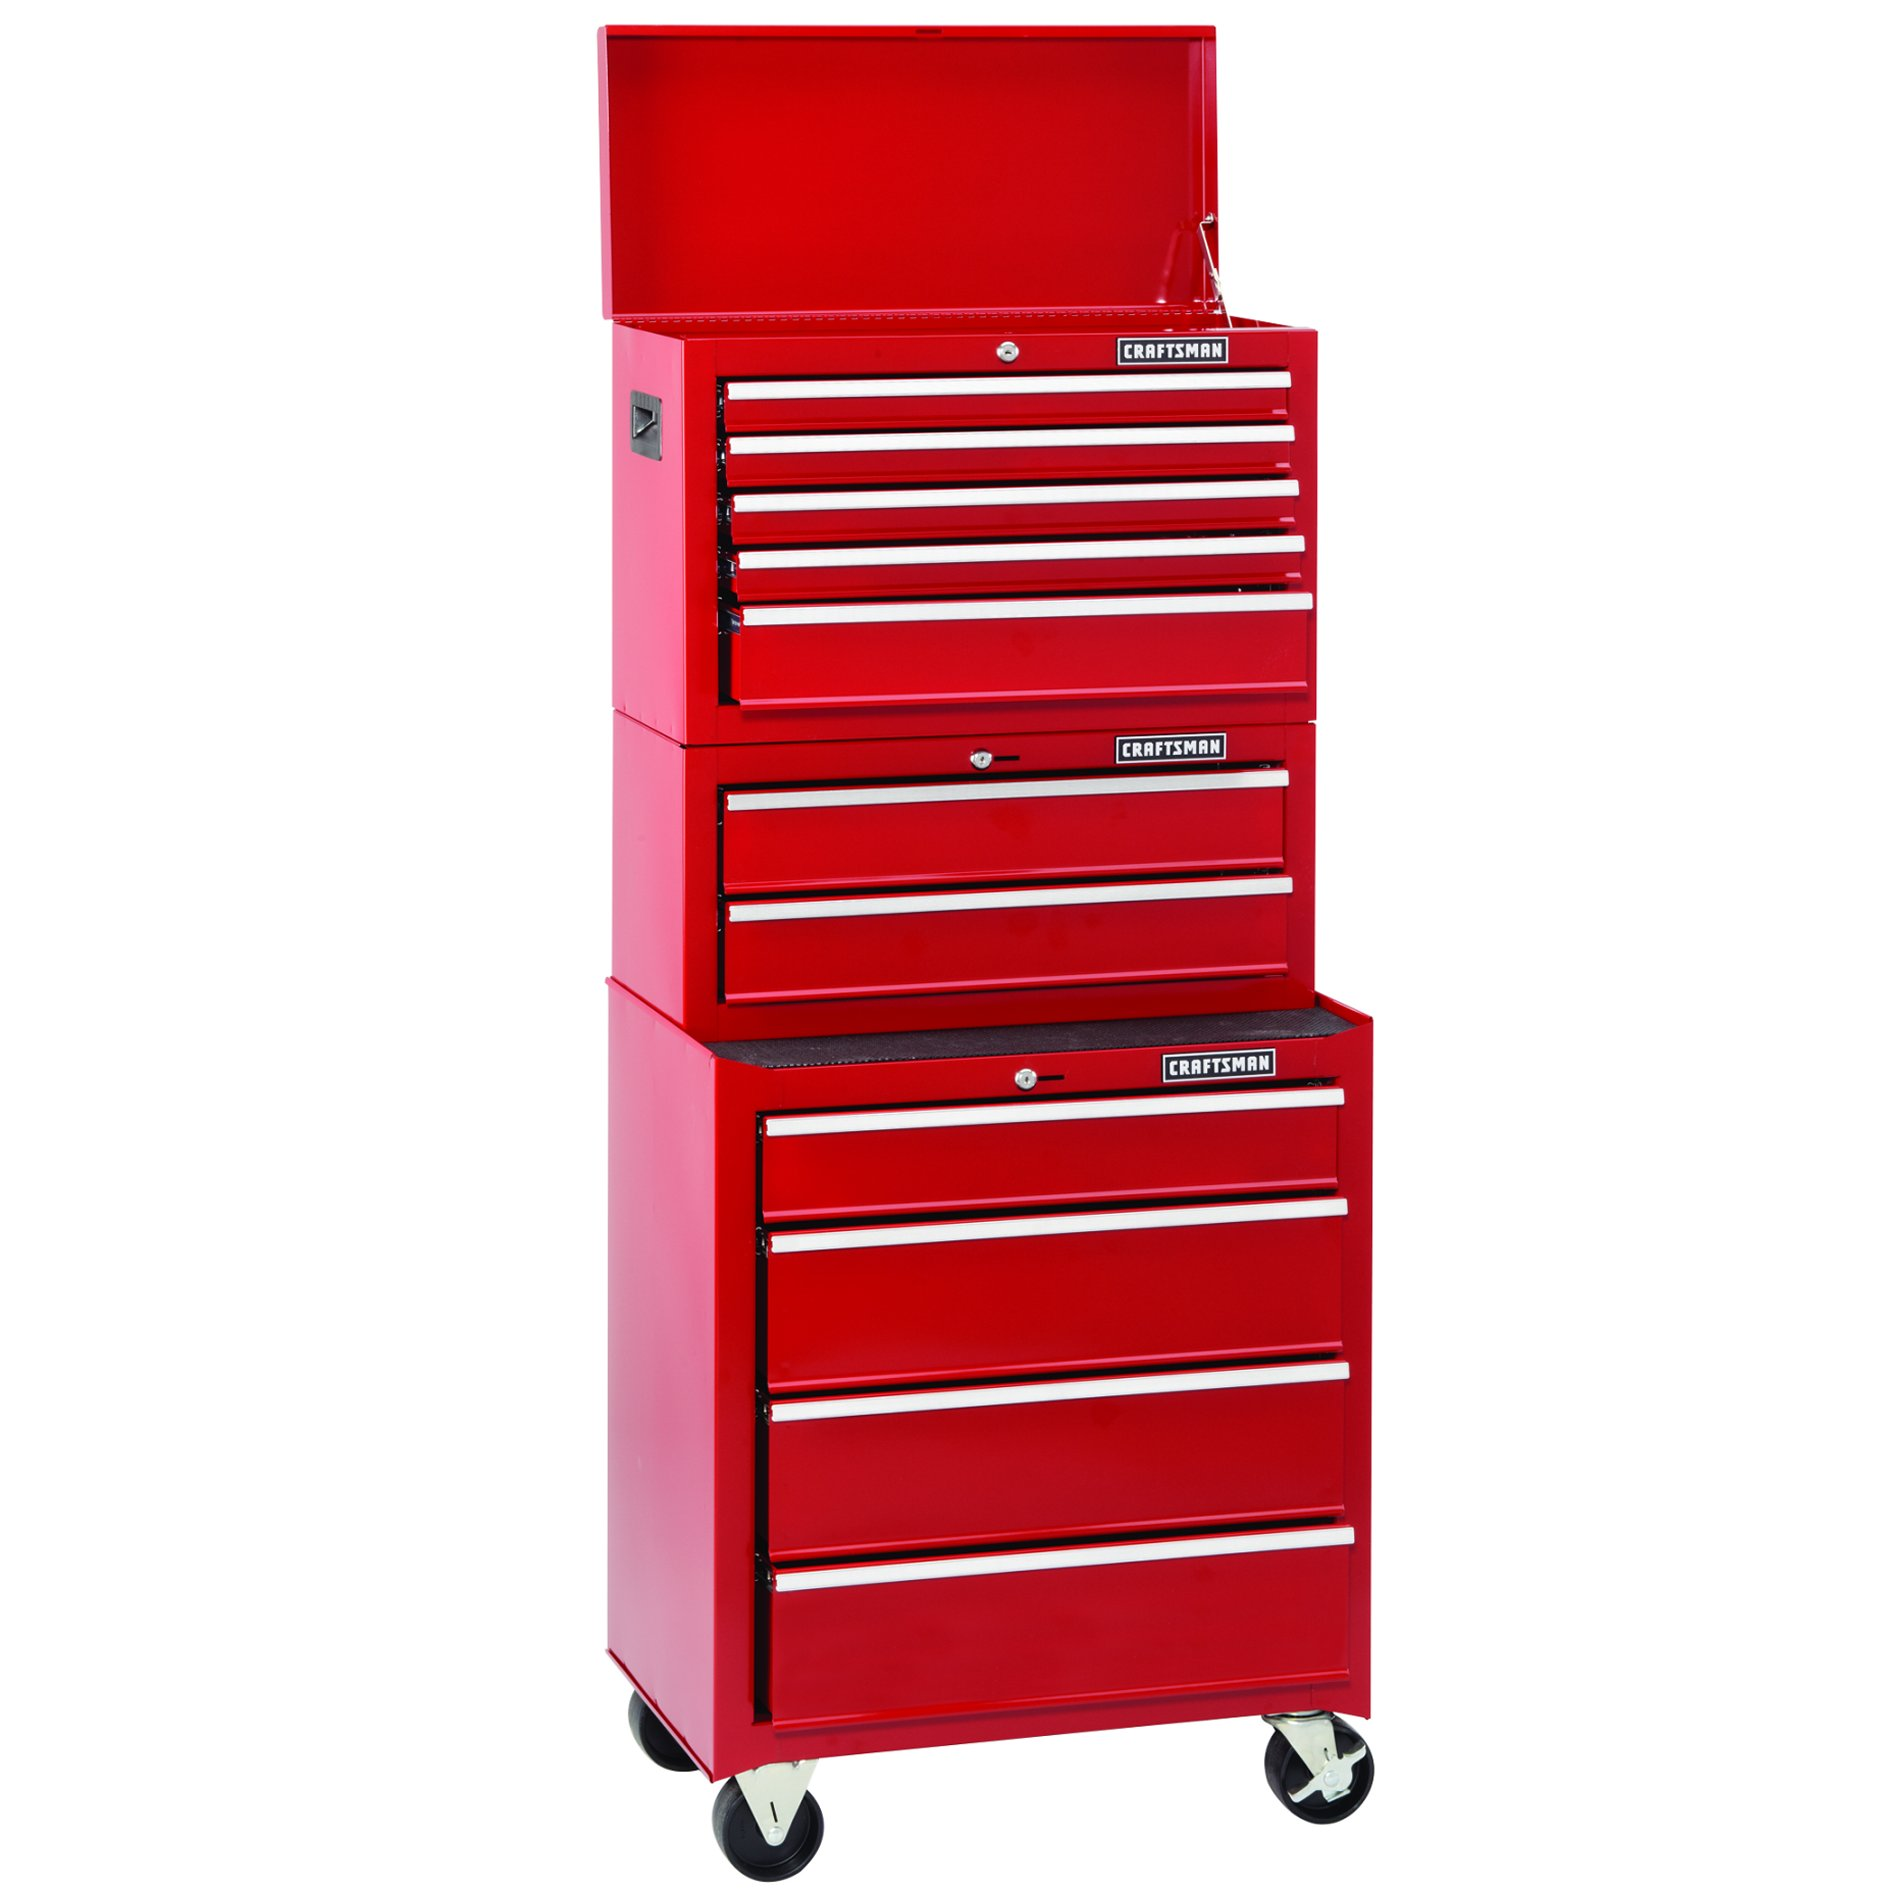 Craftsman 26 in. 2-Drawer Standard Duty Ball Bearing Middle Chest - Red